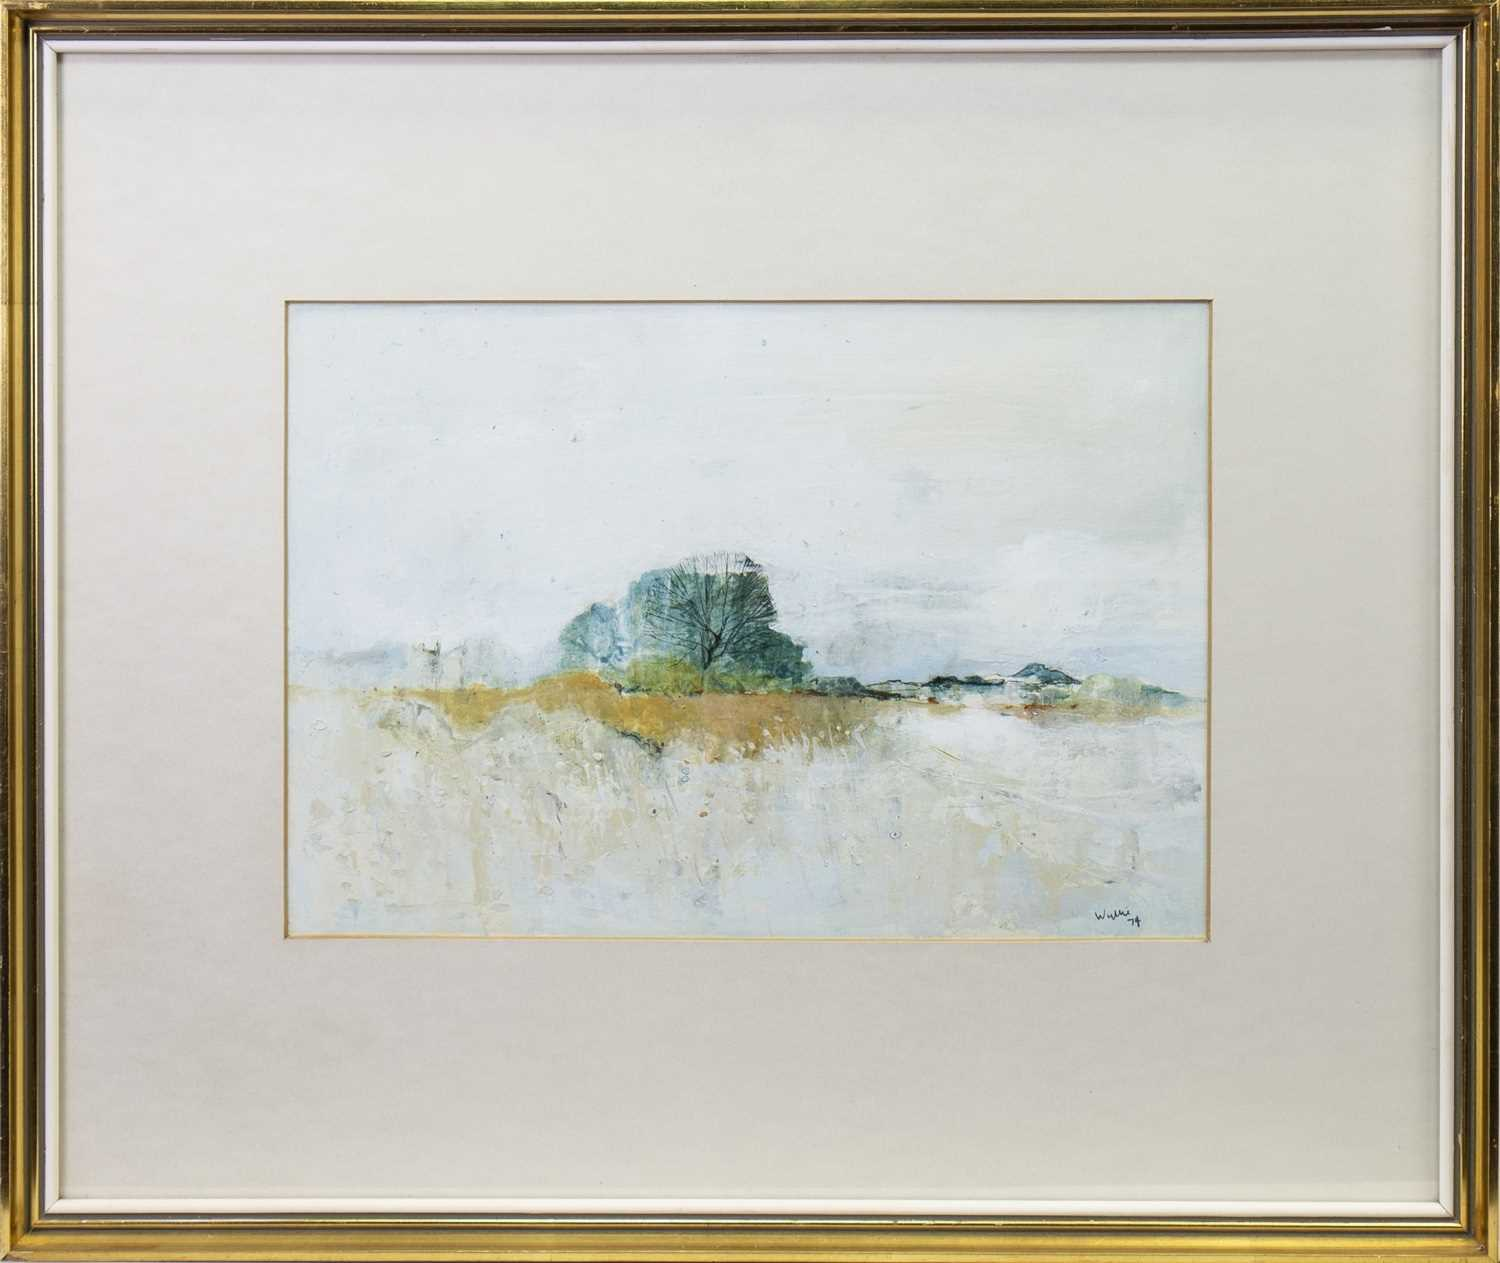 Lot 663-BEN LOMOND, A MIXED MEDIA BY GORDON HOPE WYLLIE